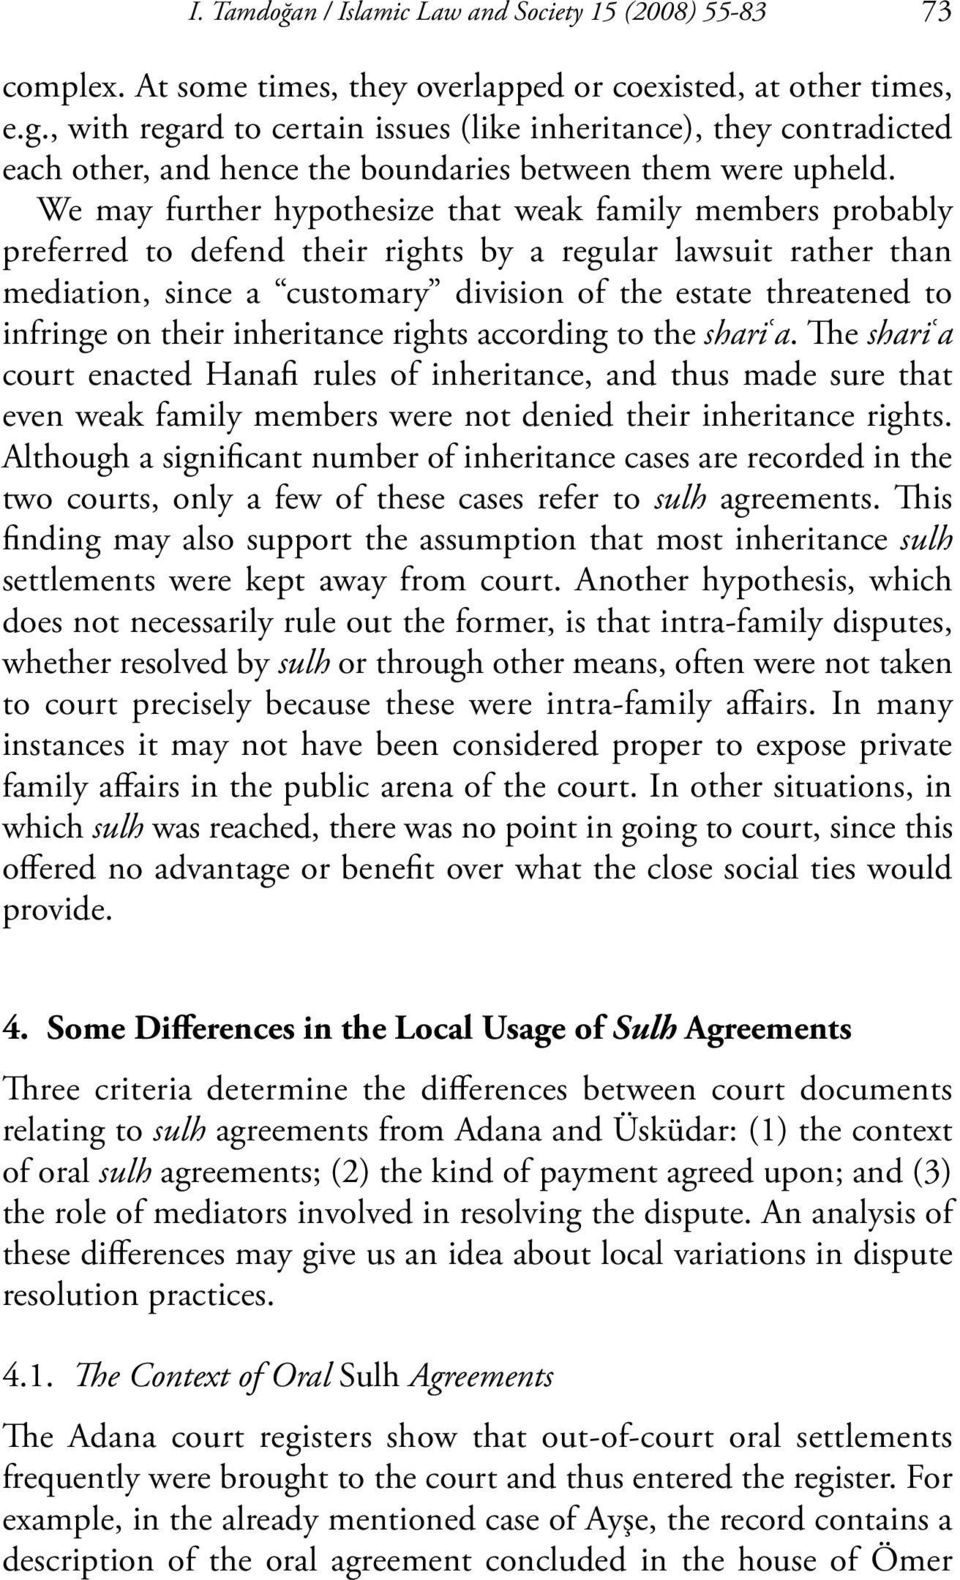 We may further hypothesize that weak family members probably preferred to defend their rights by a regular lawsuit rather than mediation, since a customary division of the estate threatened to